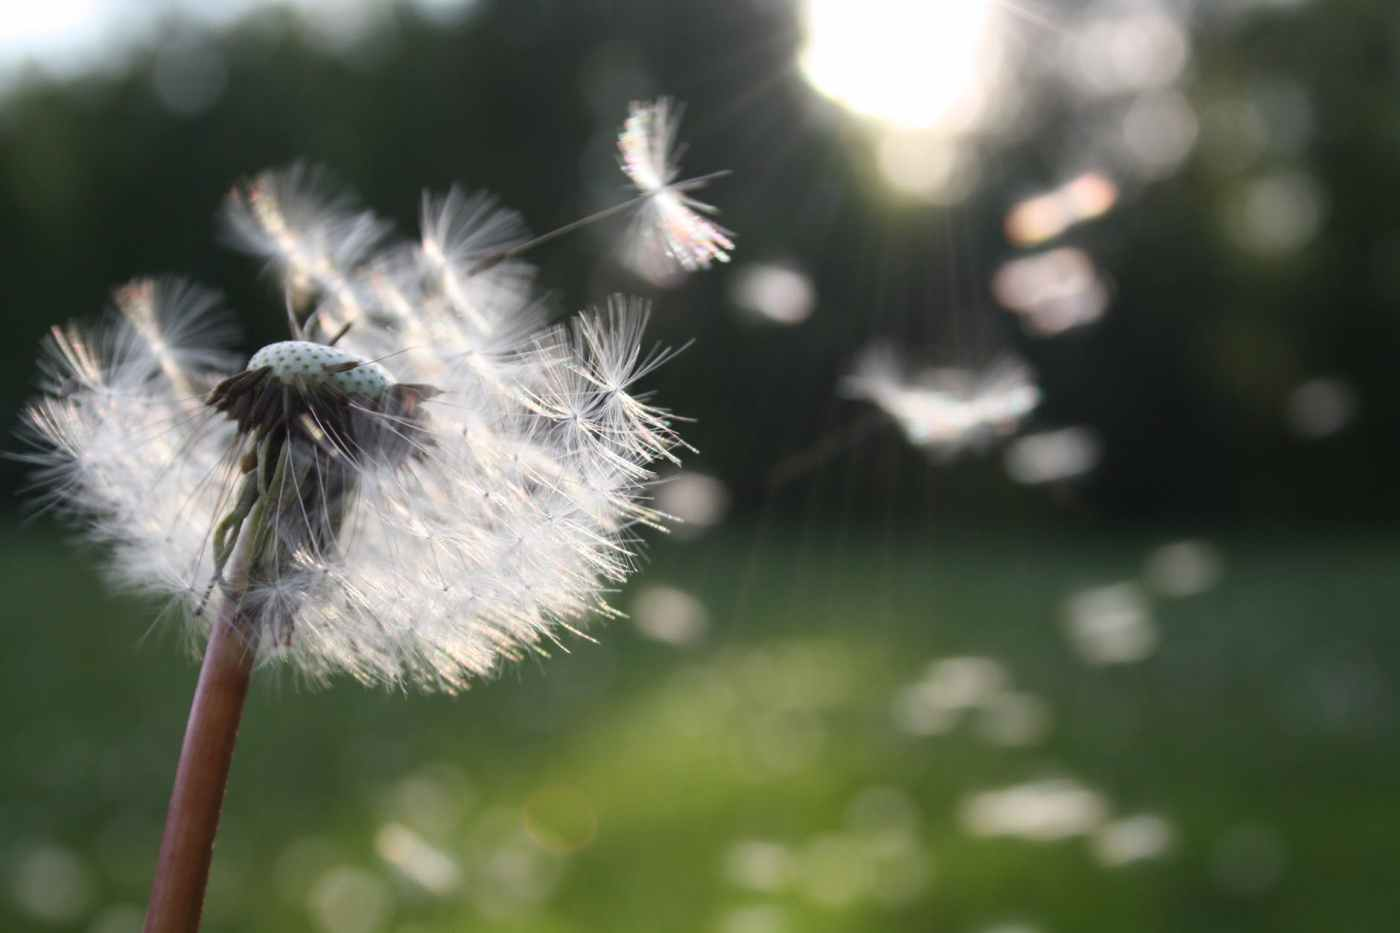 Image of dandelion petals being blown away by wind